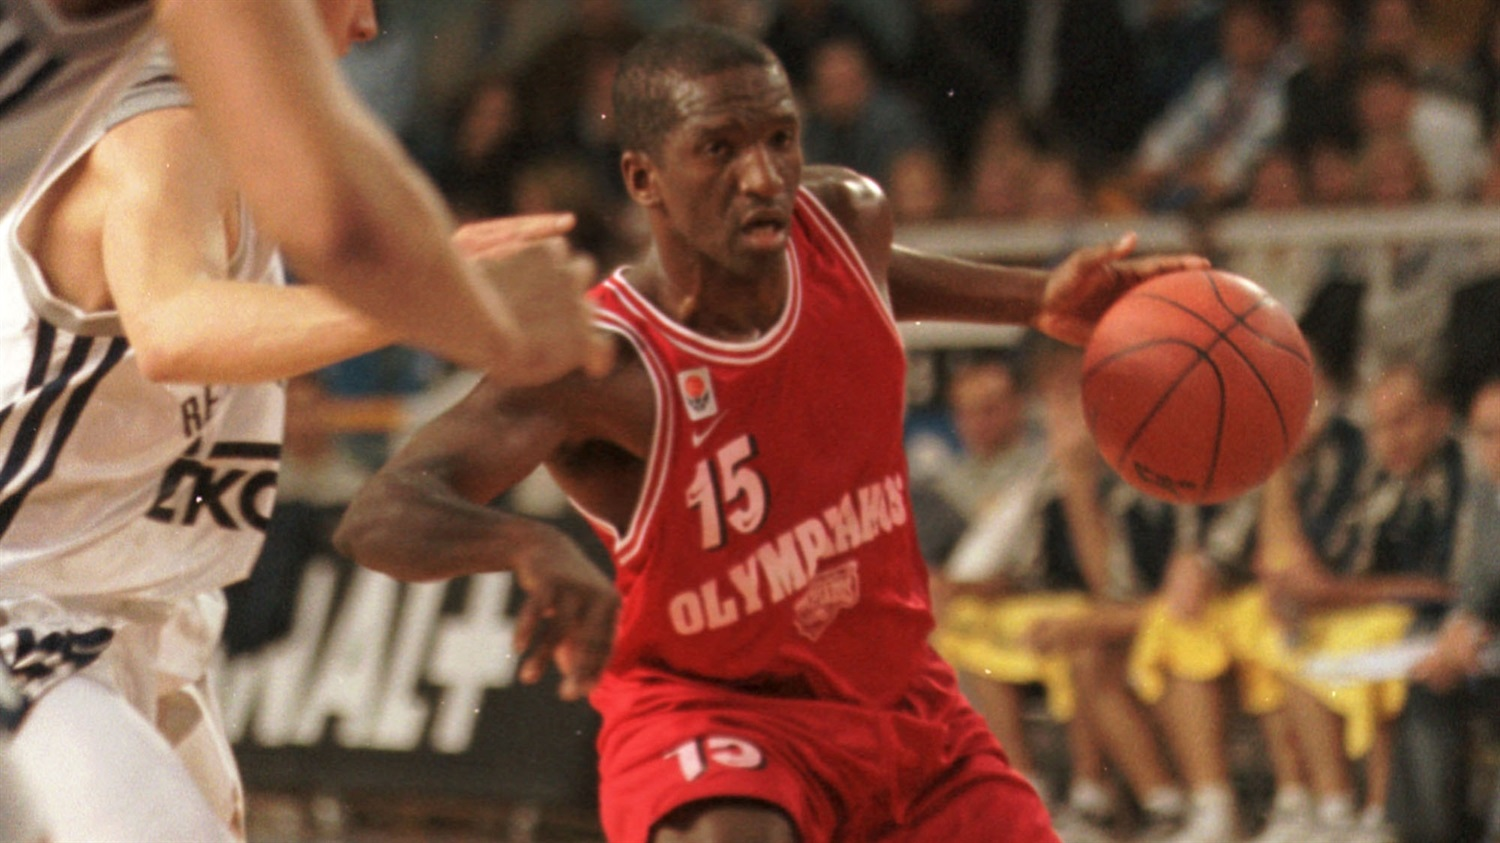 David Rivers had 5 points for Olympiacos, all from free throws